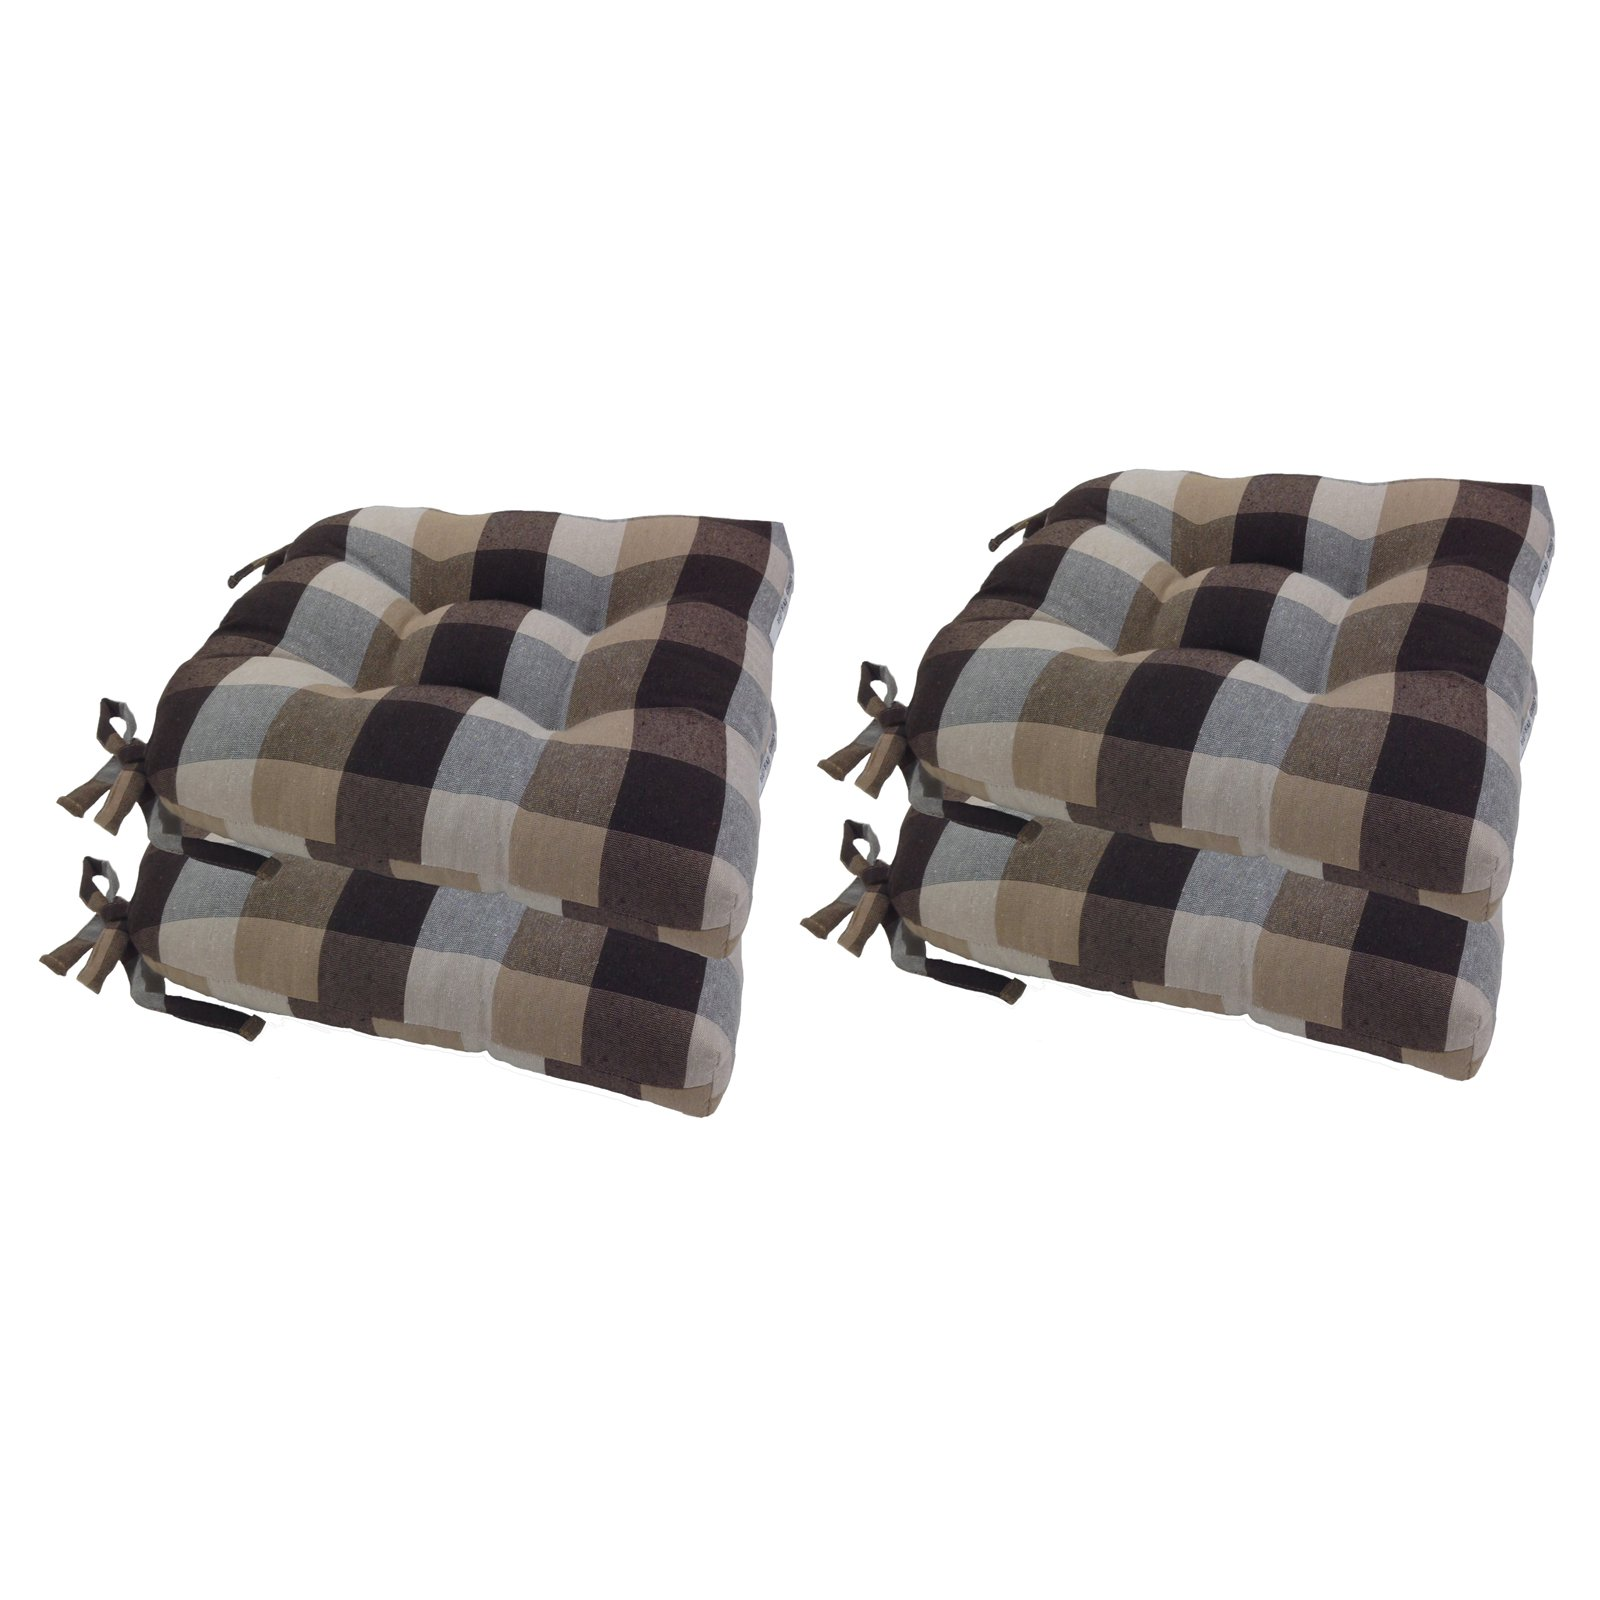 Arlee 16 x 16 in. Buffalo Check Woven Plaid Chair Pad Set of 4 by Arlee Home Fashions Inc